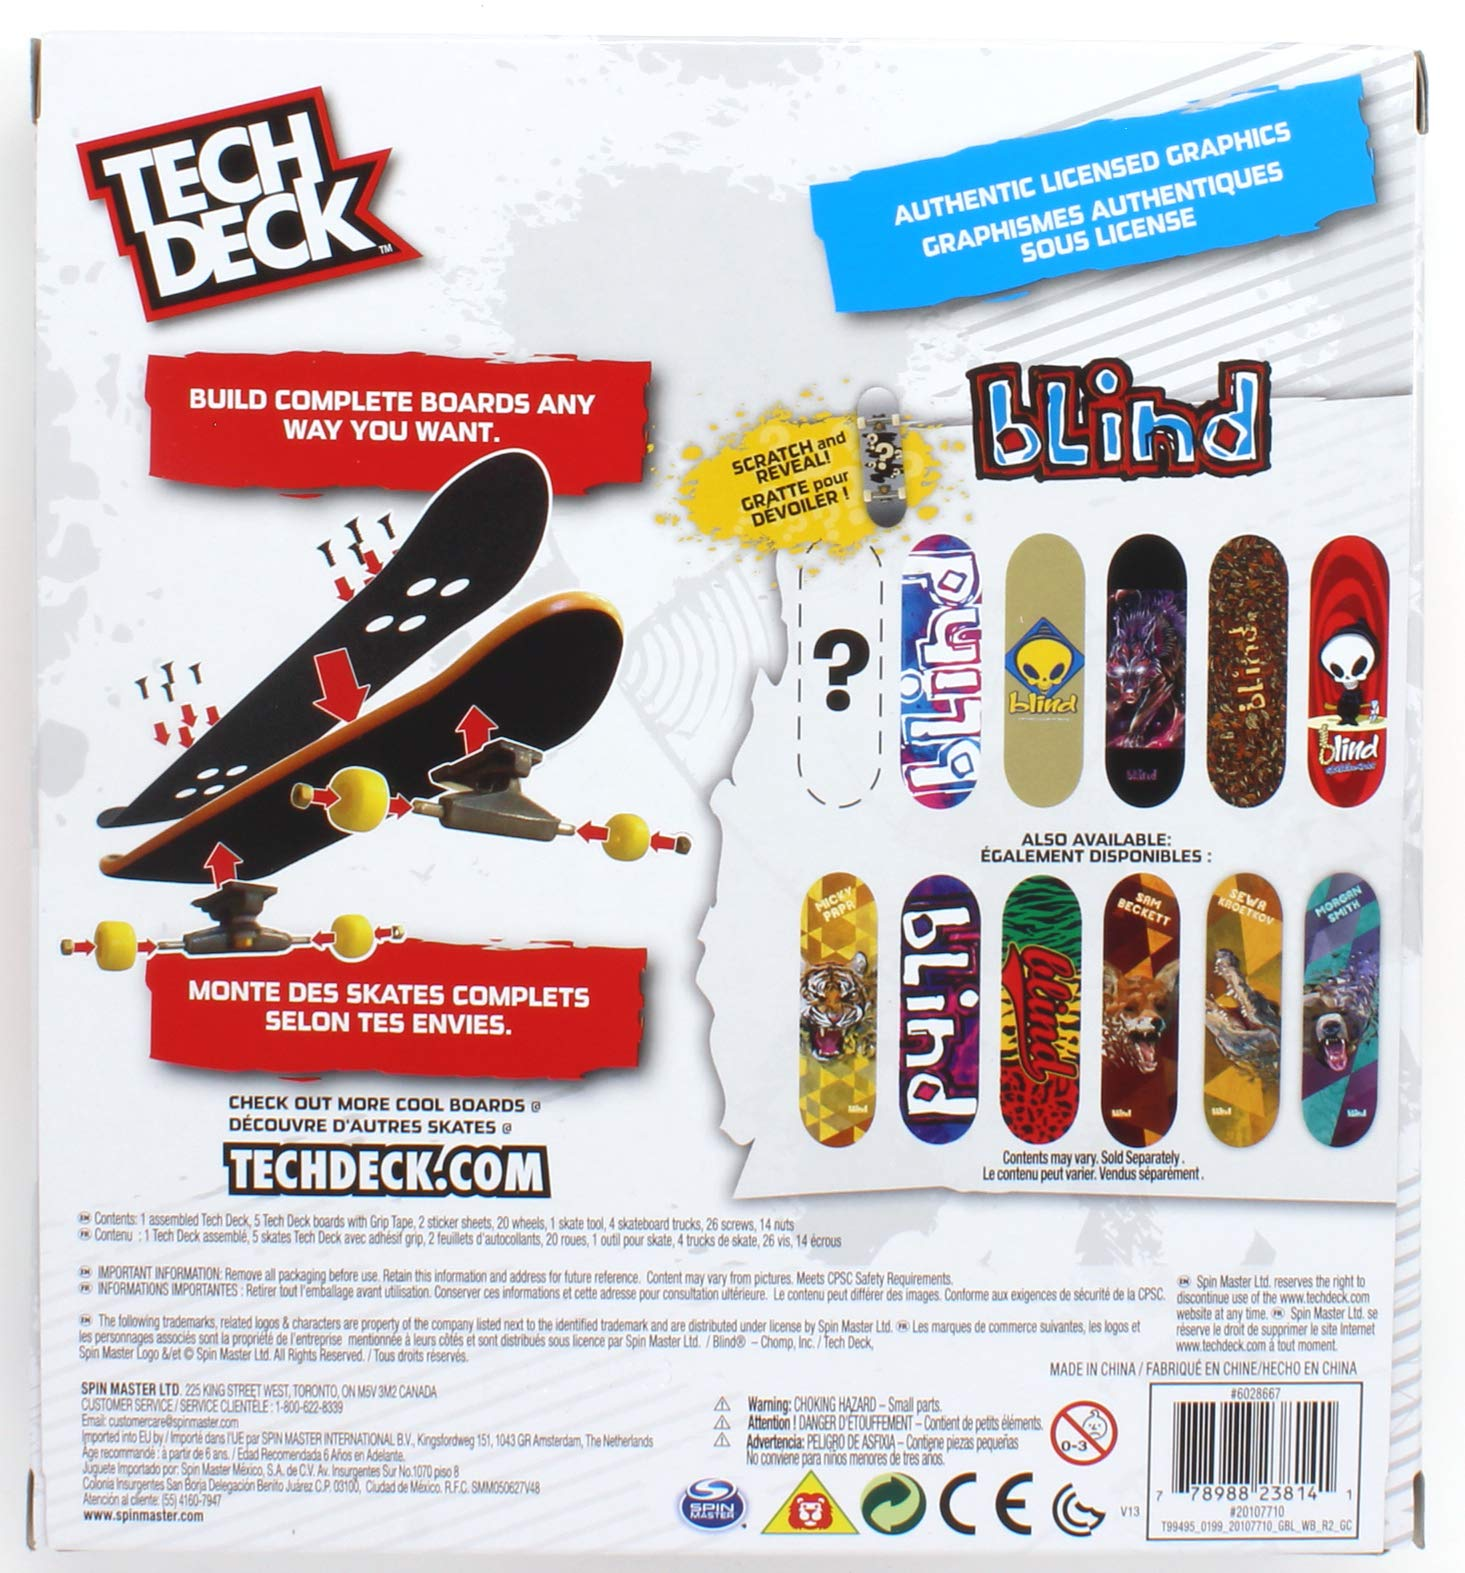 Tech Deck Blind Skateboards Sk8shop Bonus Pack with 6 Fingerboards by Tech Deck Blind (Image #2)